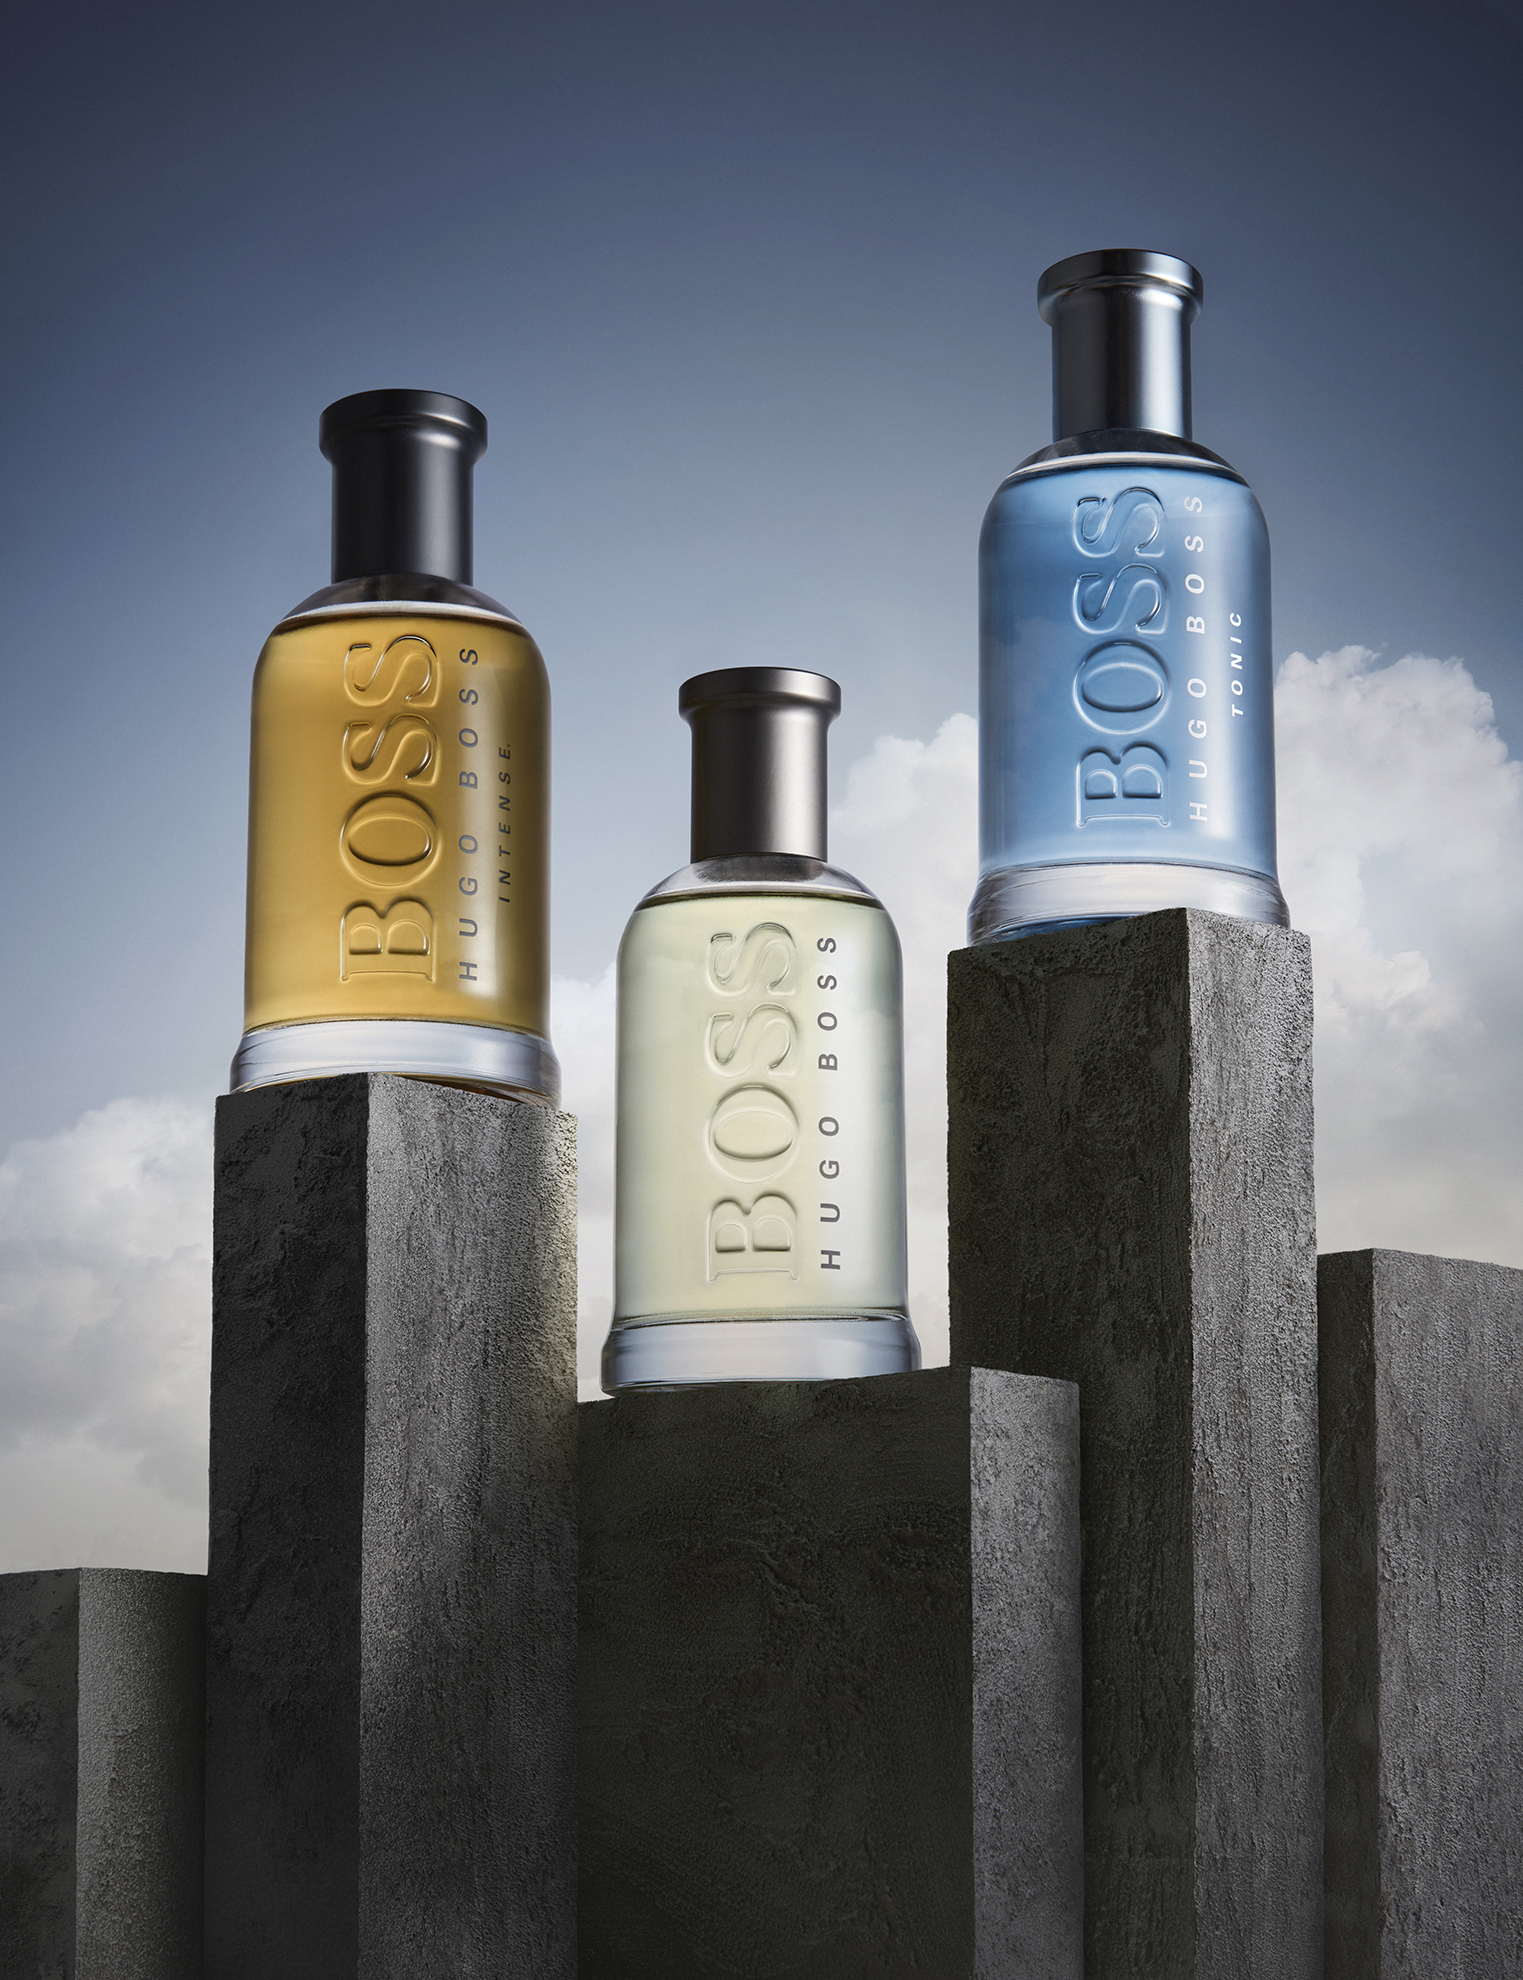 hugo-boss-fragrance-still-life-photography-josh-caudwell-perfume-still-life-photographer-london.jpg